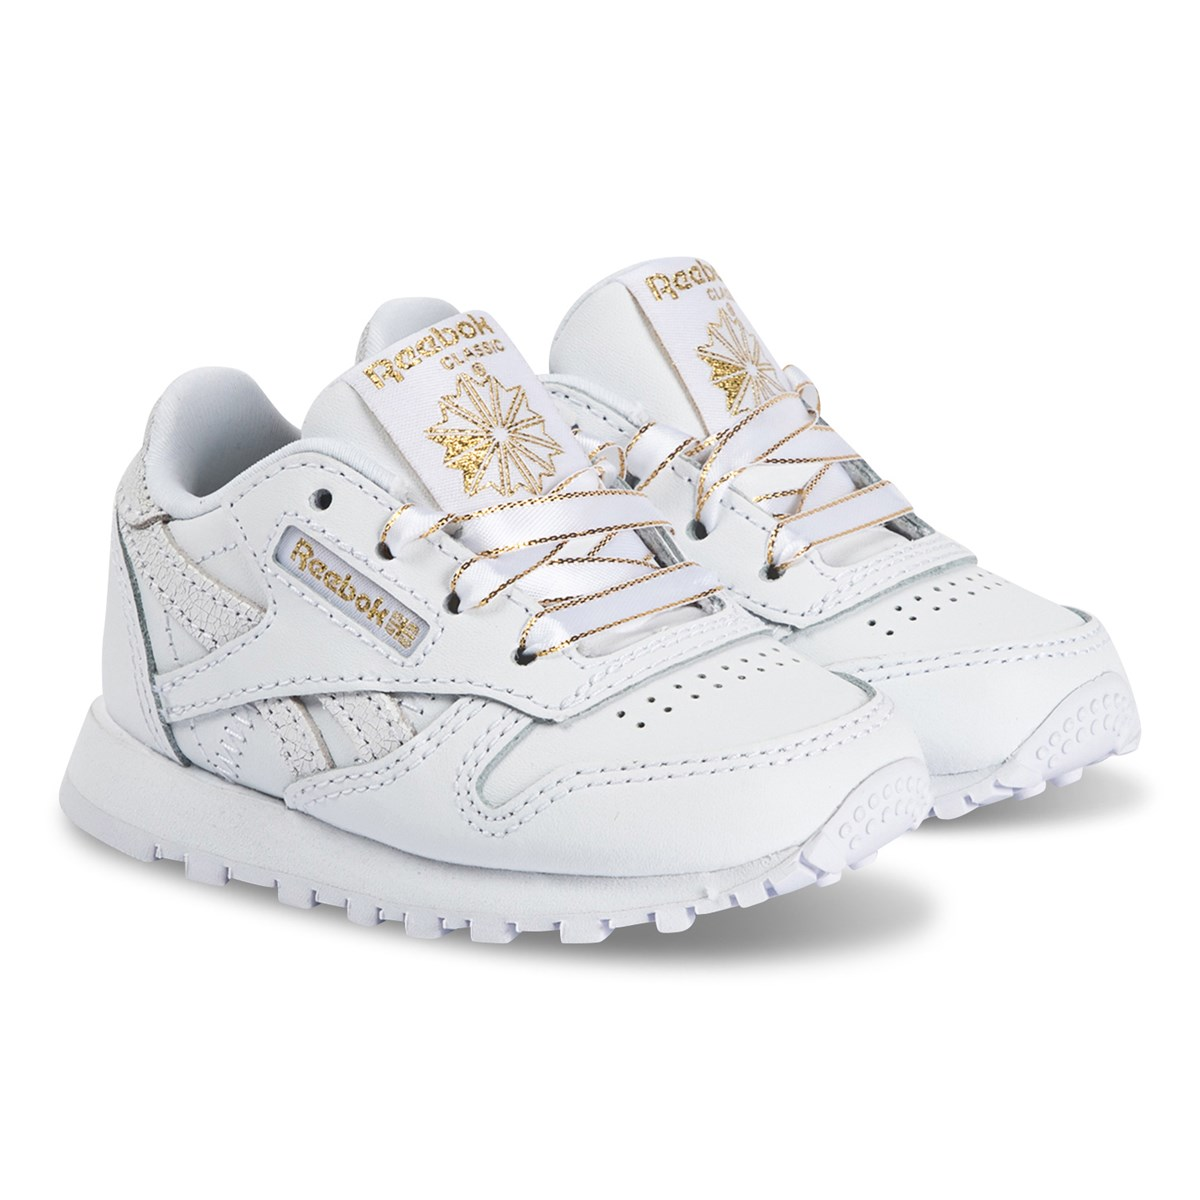 Infant Sneakers Reebok Classic Leather Infant Sneakers White And Gold Babyshop